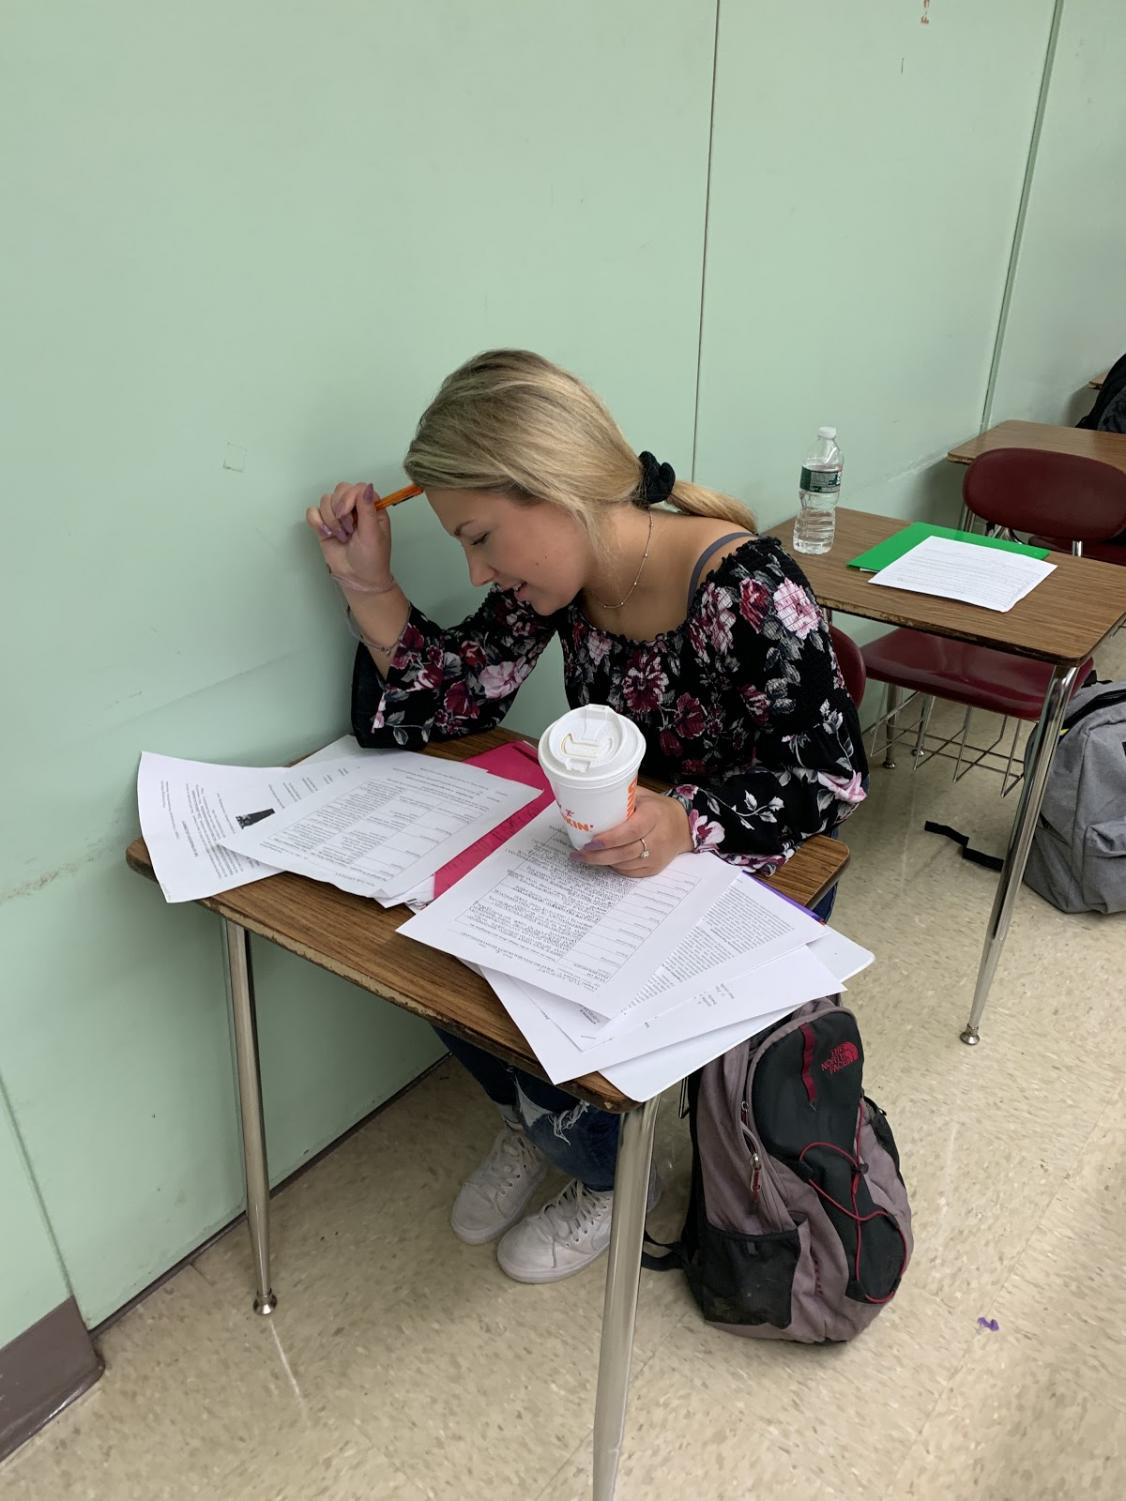 Tia Cormier, stressed and sleep deprived - in need of time to get her work done (Photo Credit: Caroline)